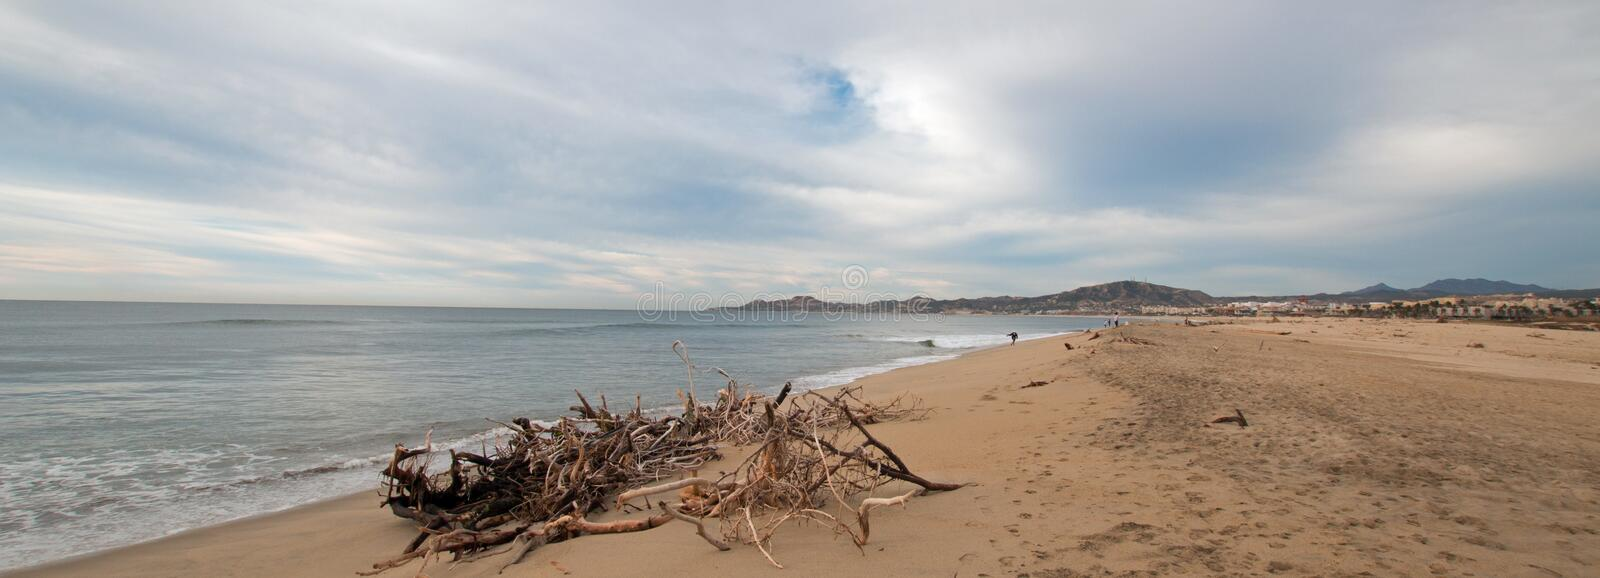 Driftwood on the beach in San Jose Del Cabo near Cabo San Lucas in Baja California Mexico royalty free stock photo